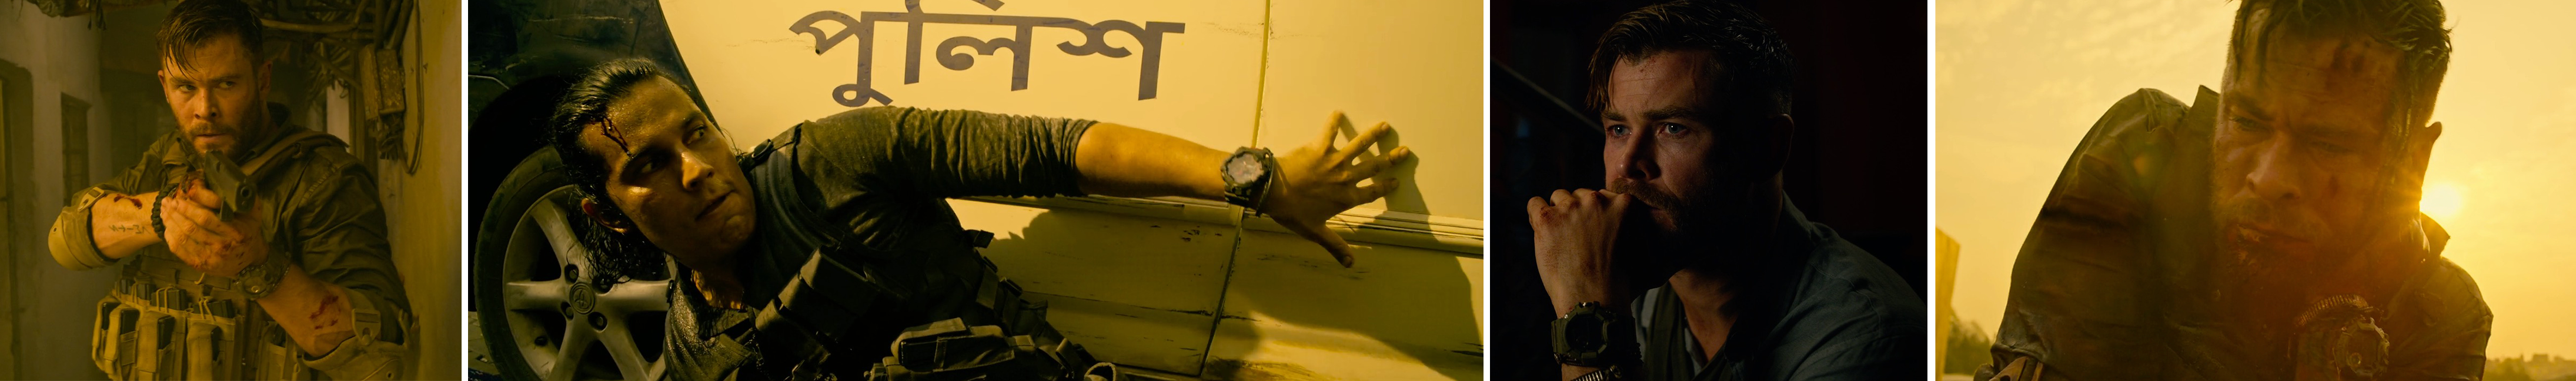 Casio g shock product placement watch worn by Chris Hemsworth in Netflix's extraction